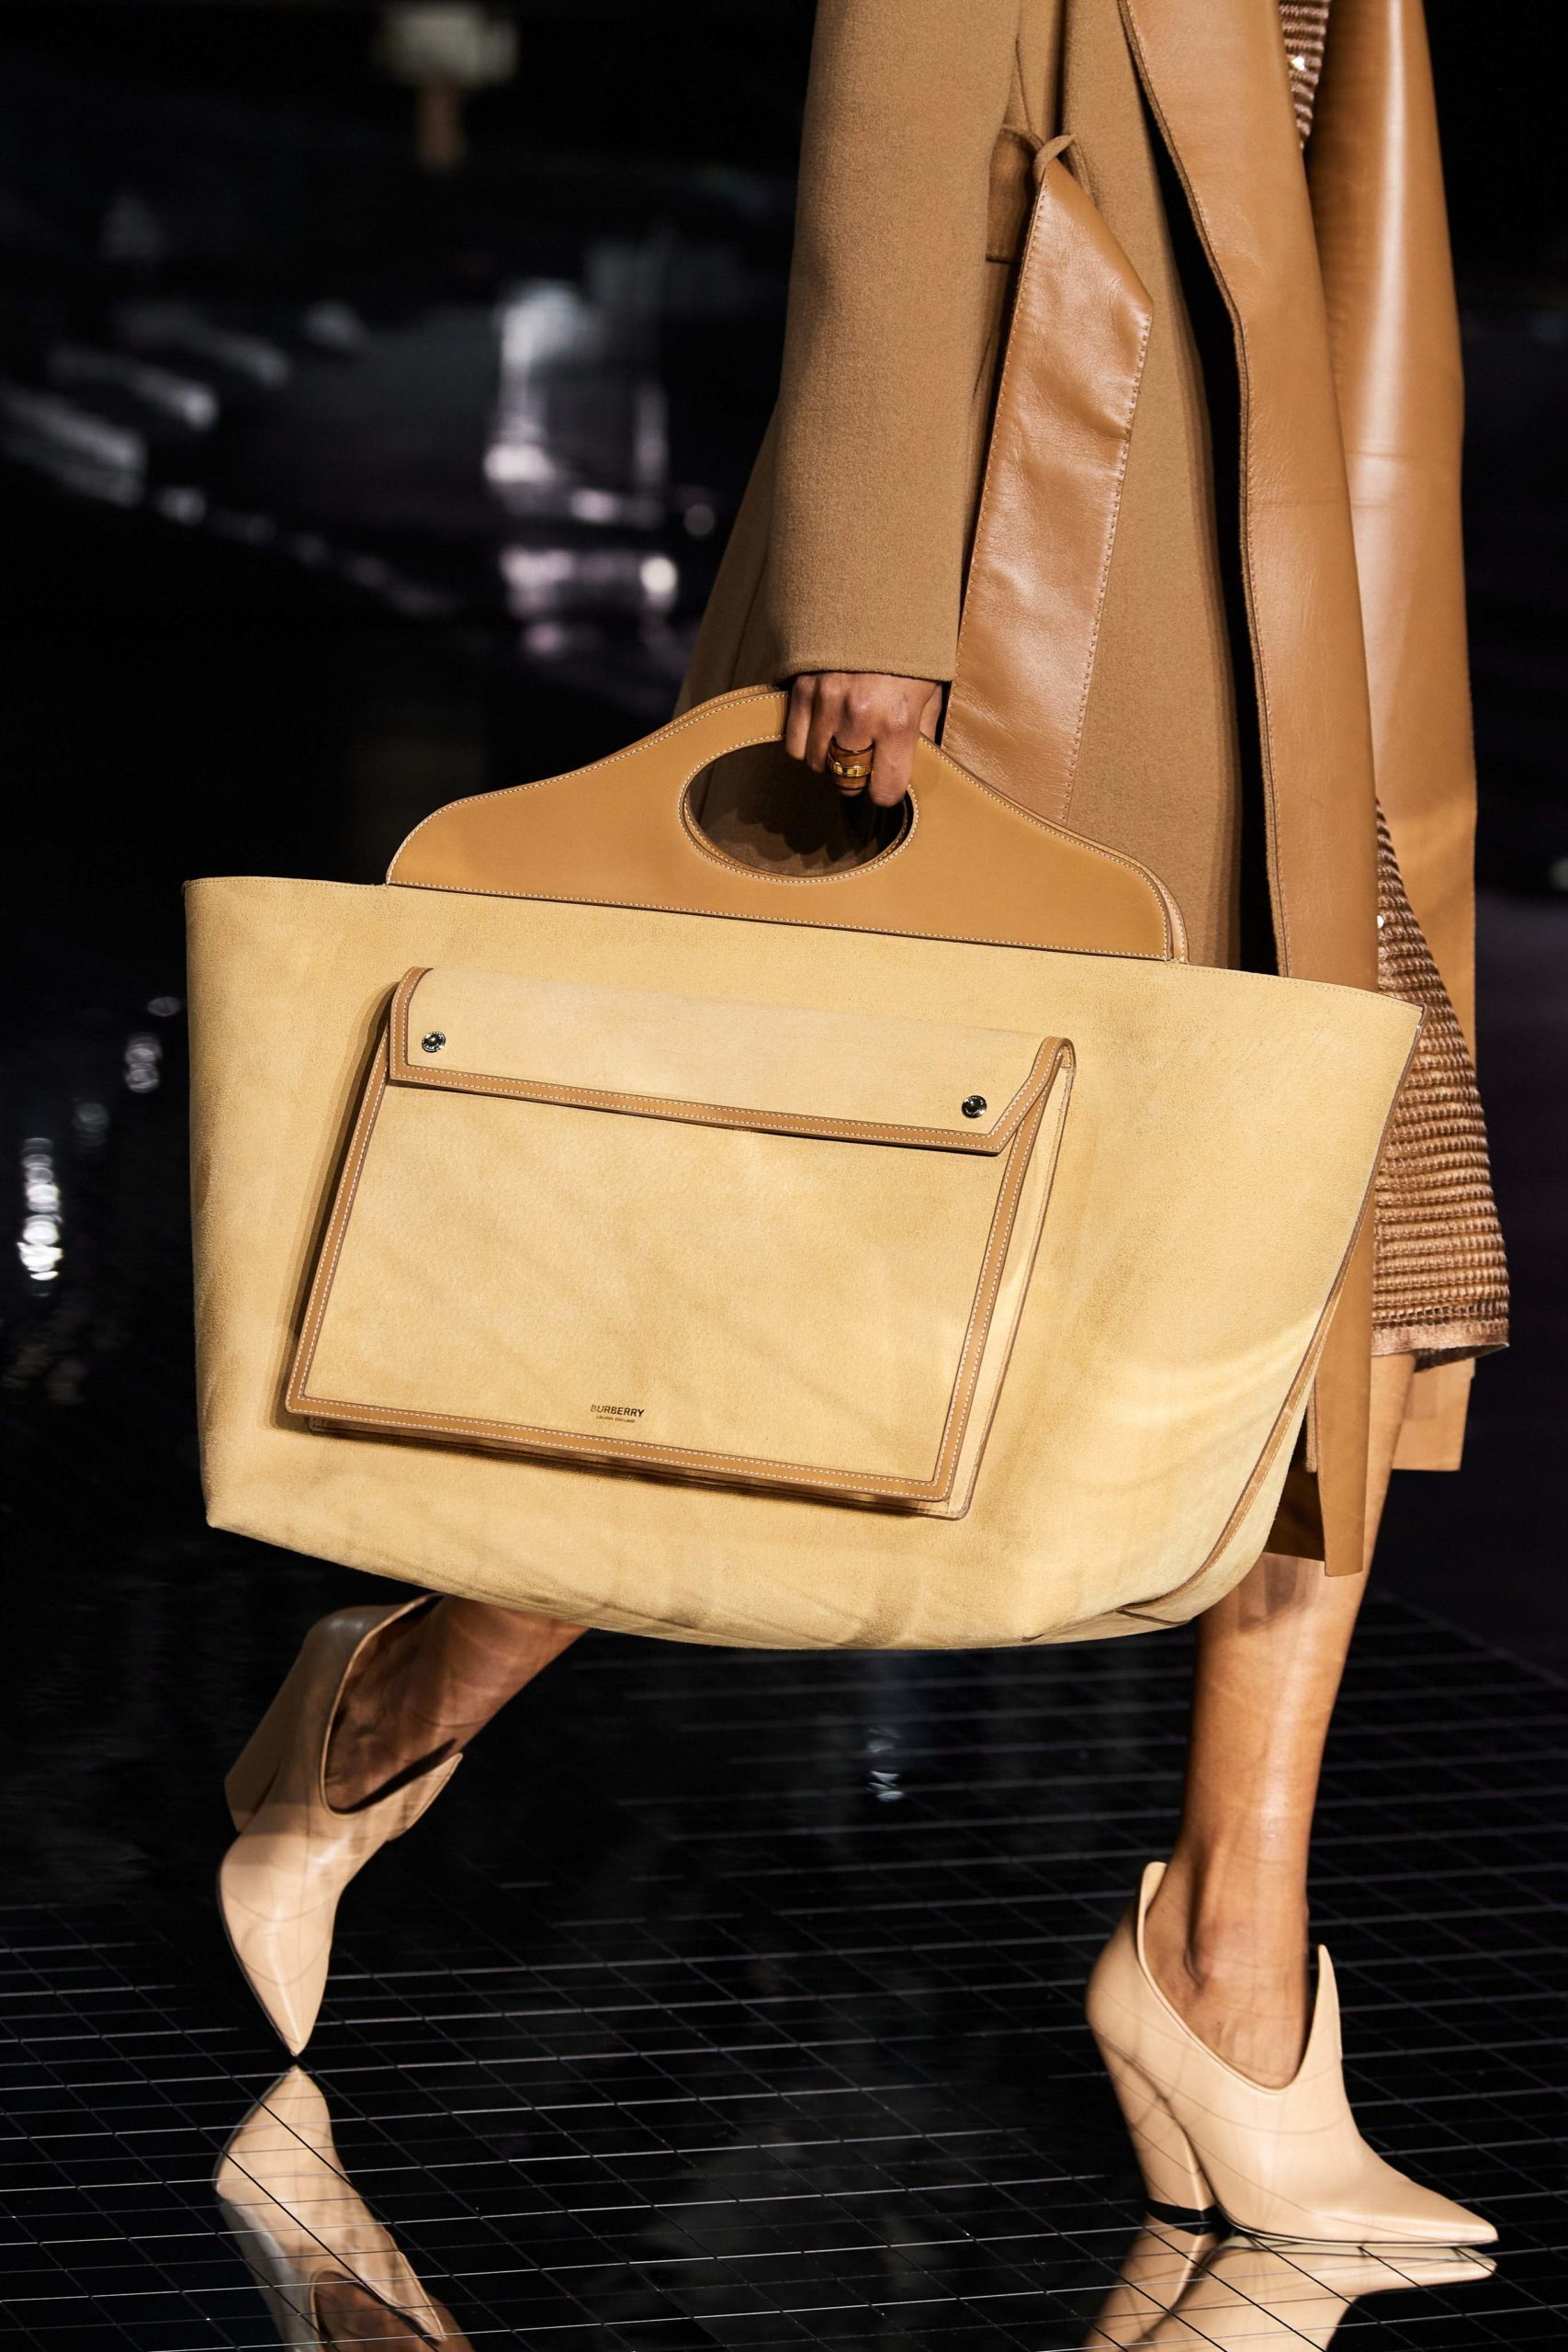 Burberry Fall 2020 trends runway report Ready To Wear Vogue details XXL Bag Tote Bag